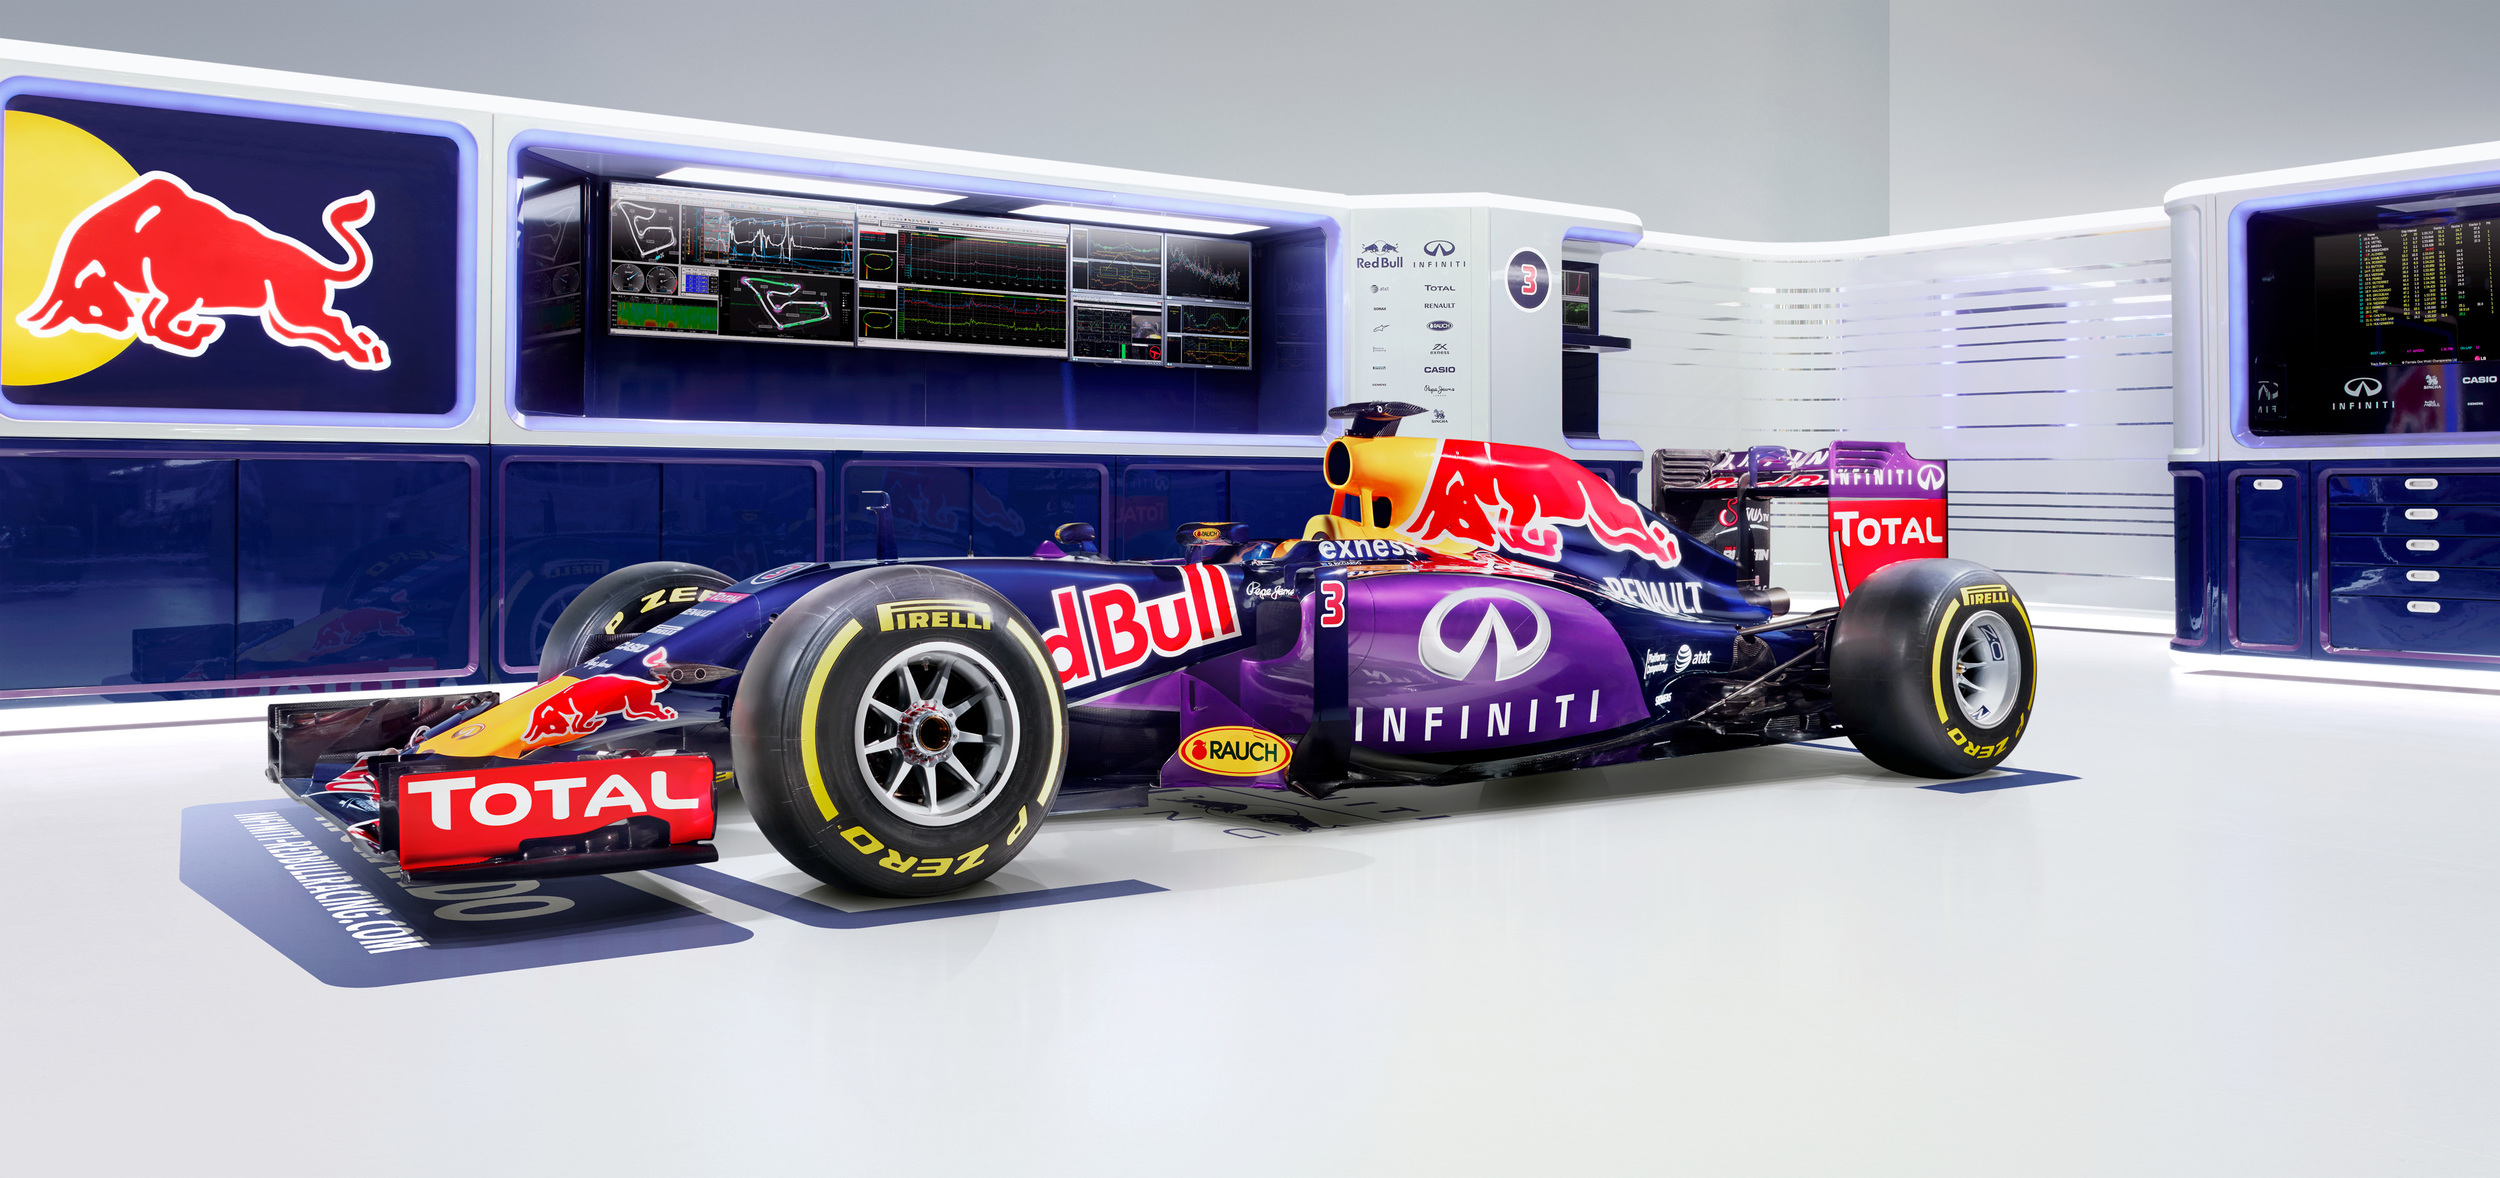 Red Bull Racing And Infiniti Will No Longer Be Partners 1